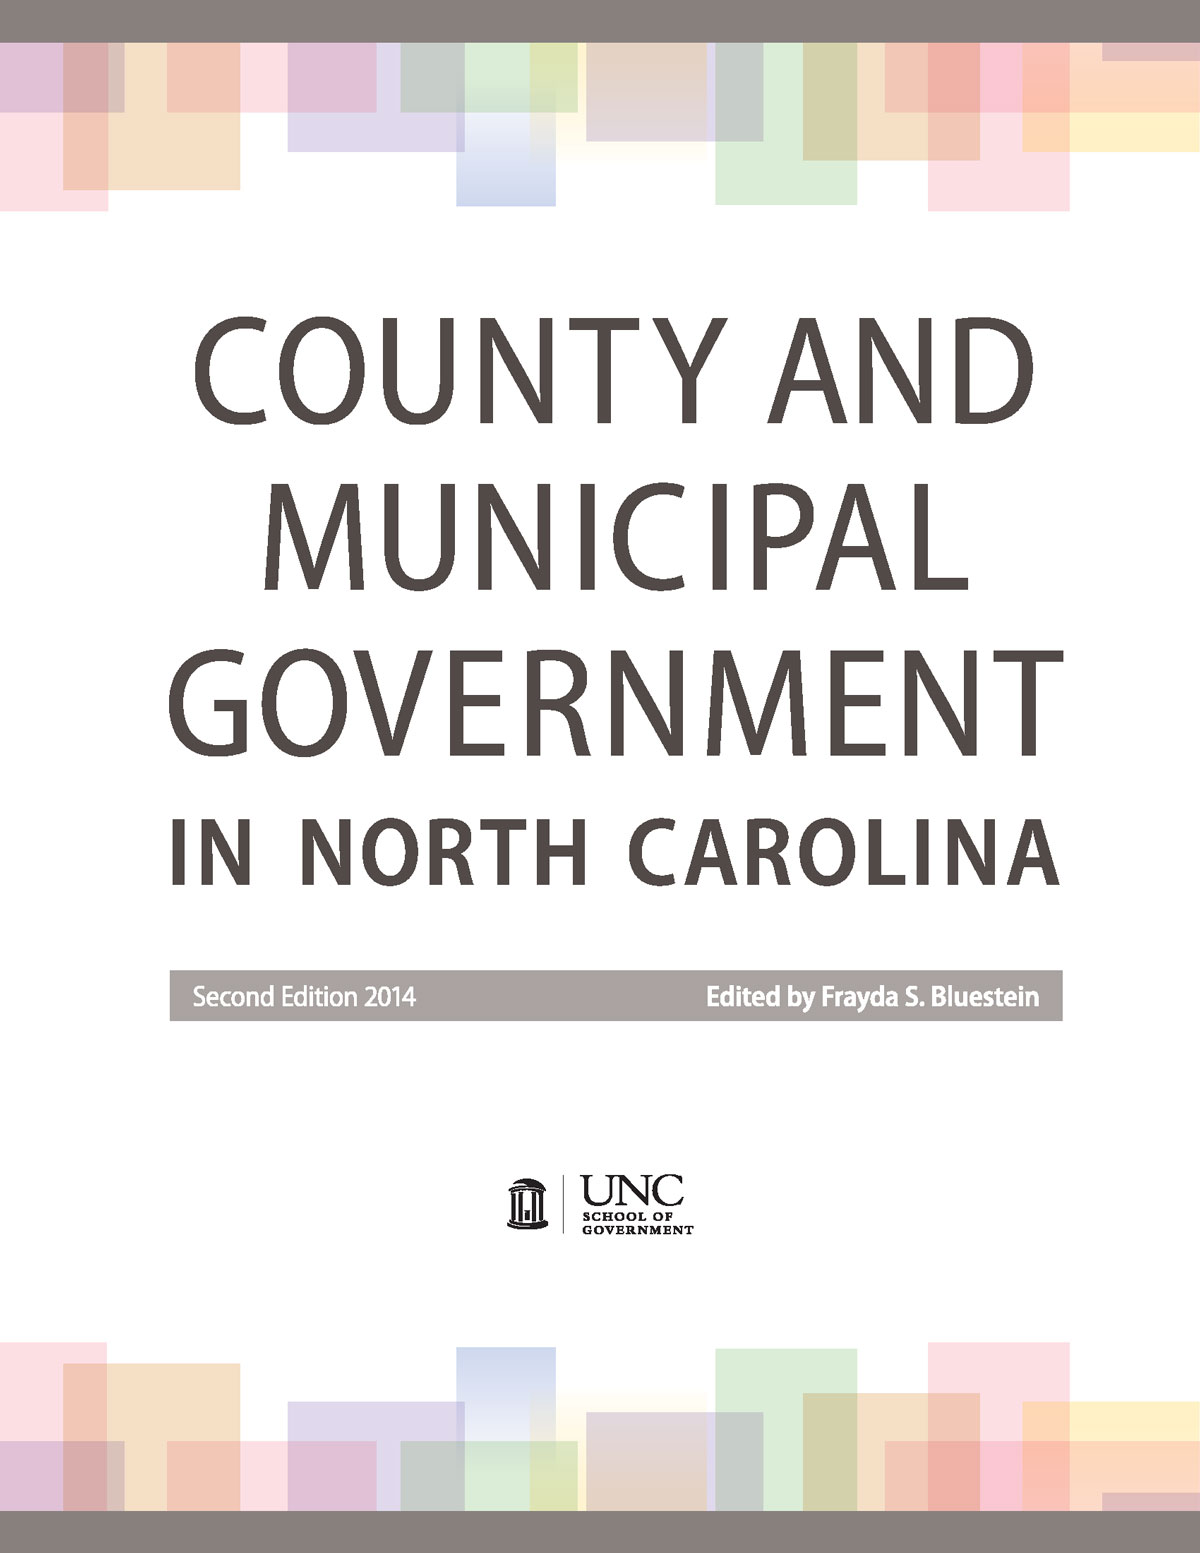 Cover image for County and Municipal Government in North Carolina, Second Edition, 2014 (Hard Copy Format)